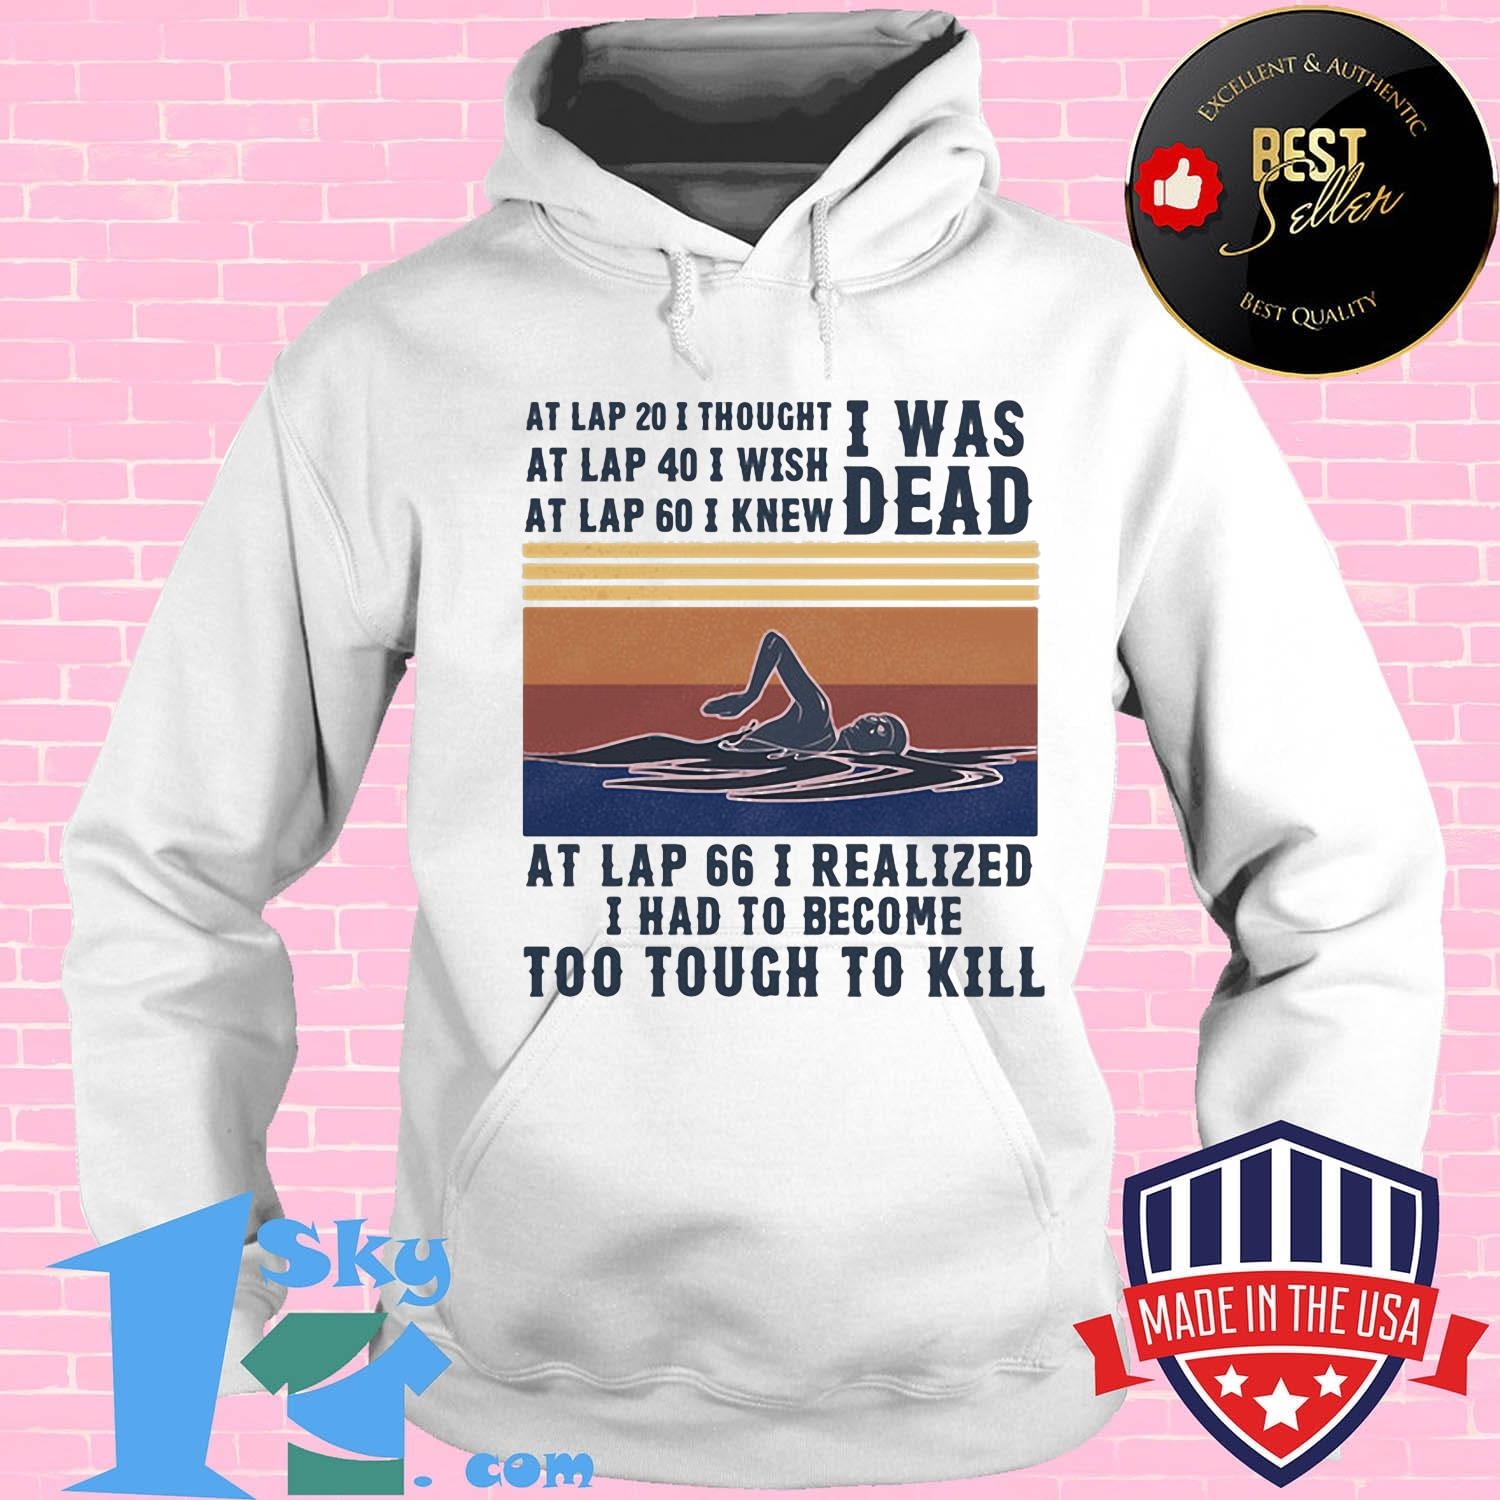 058b0f28 i was dead at lap 66 i realized i had to become too tough to kill swim vintage retro shirt hoodie - Shop trending - We offer all trend shirts - 1SkyTee